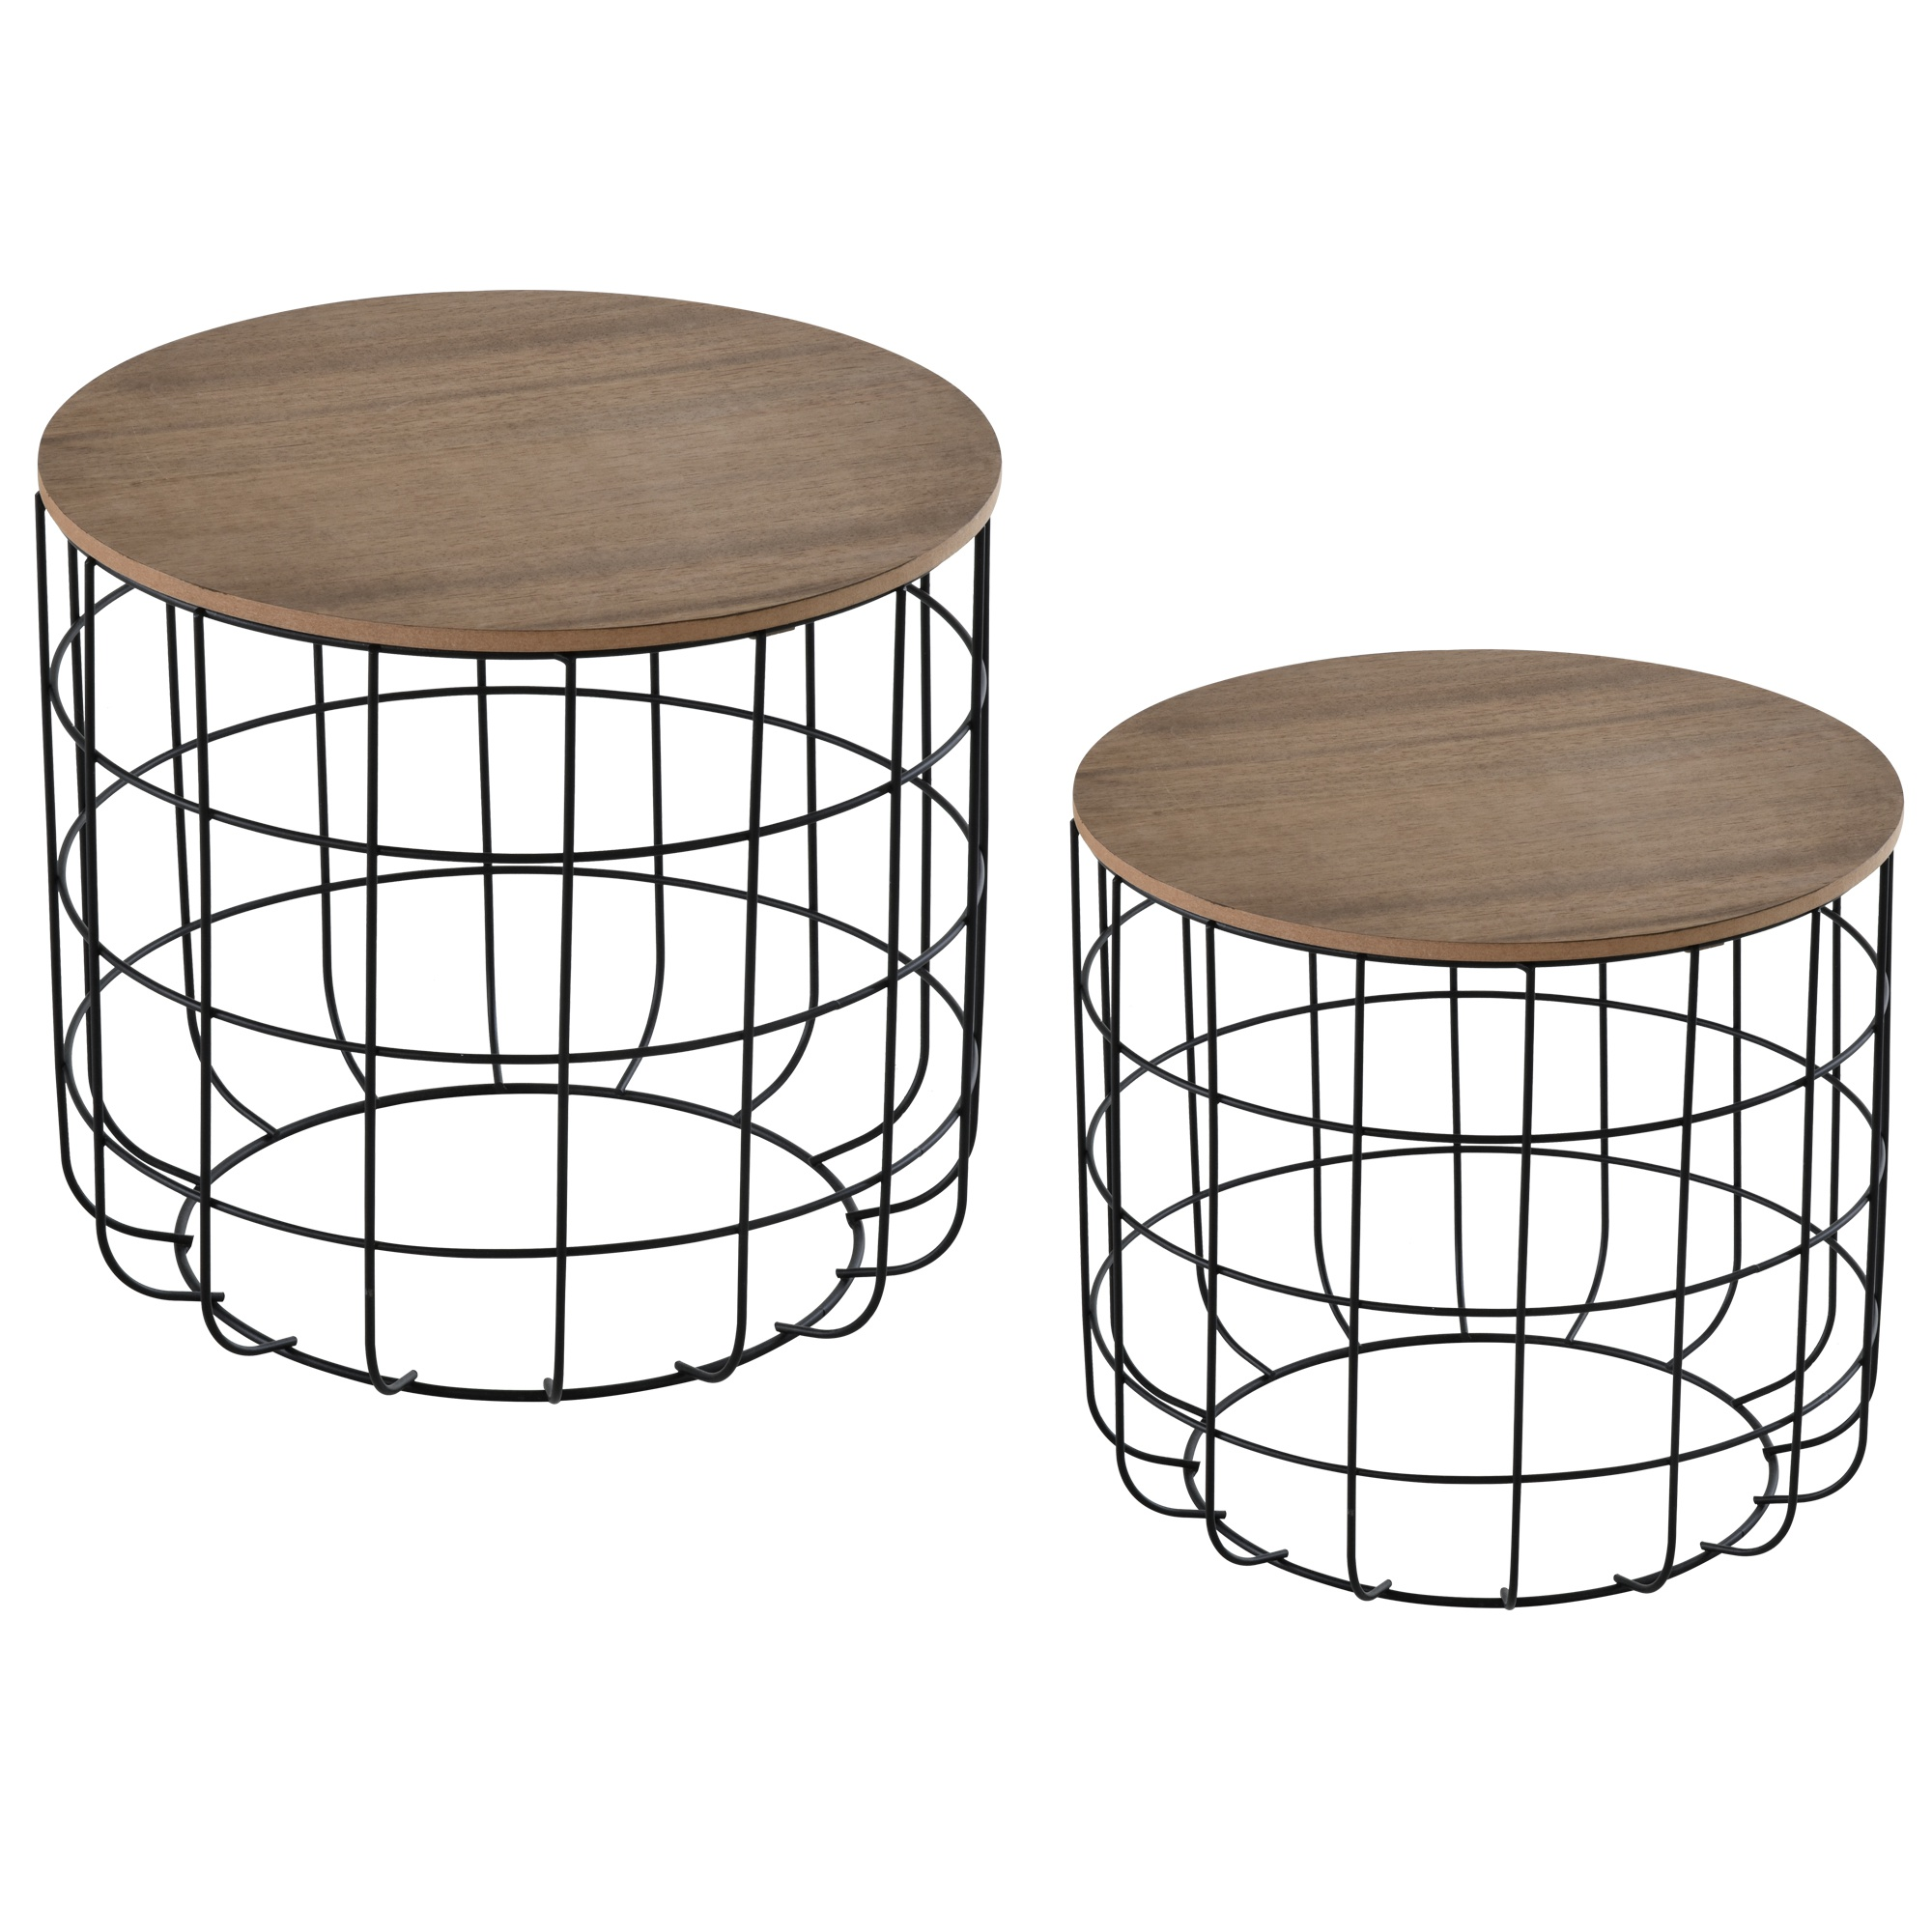 Lot de 2 tables basses gigognes encastrables noir bois